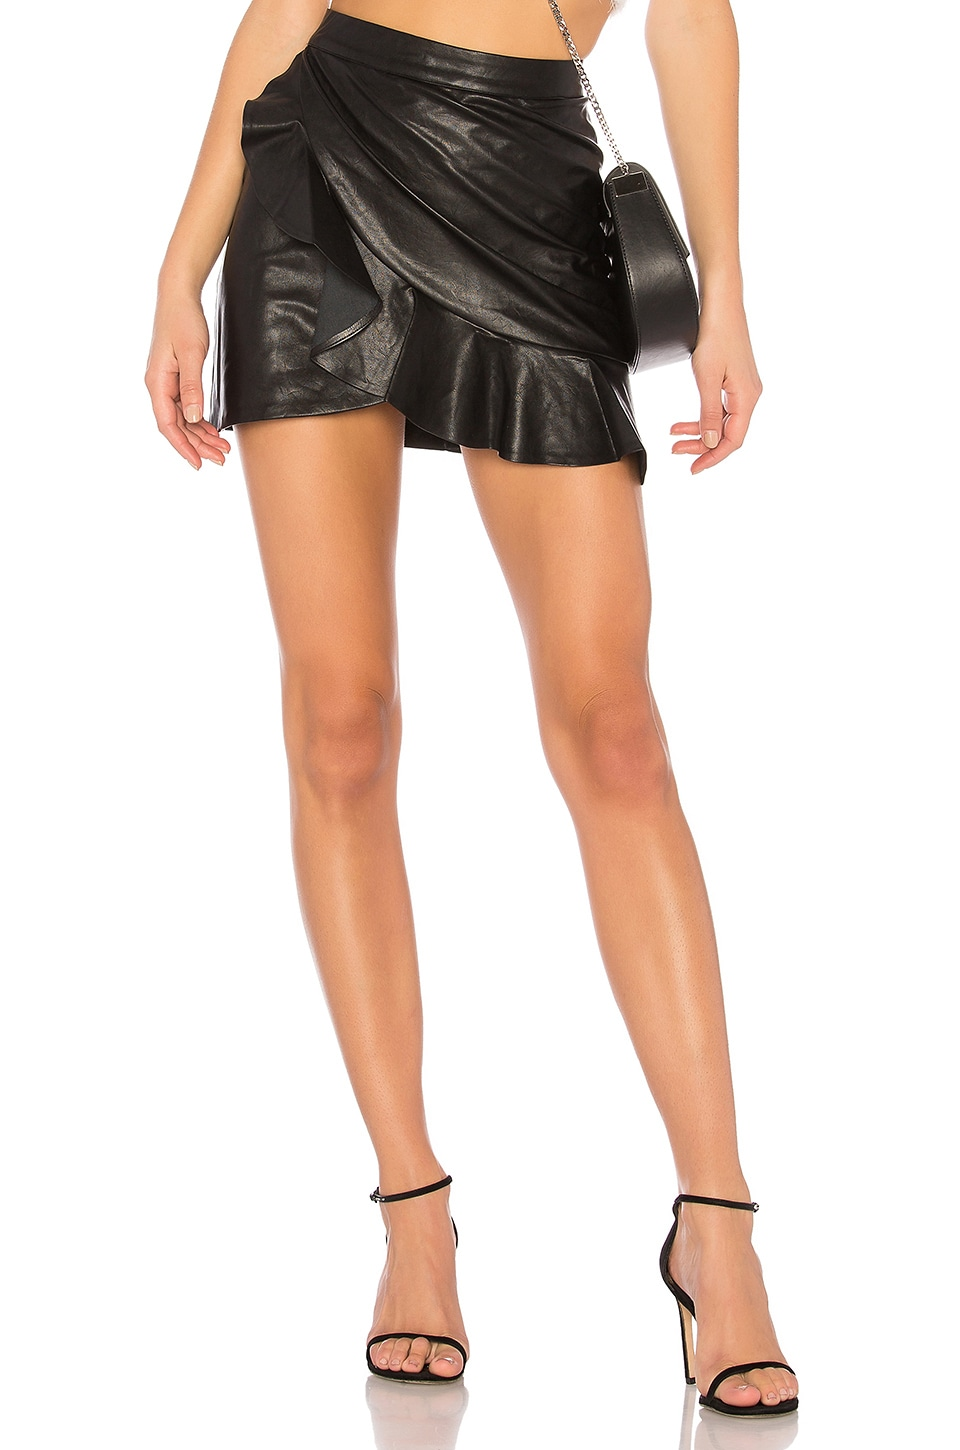 Melissa Zip Up Faux Leather Mini Skirt in Black. - size L (also in M,S,XL,XS,XXS) by the way.